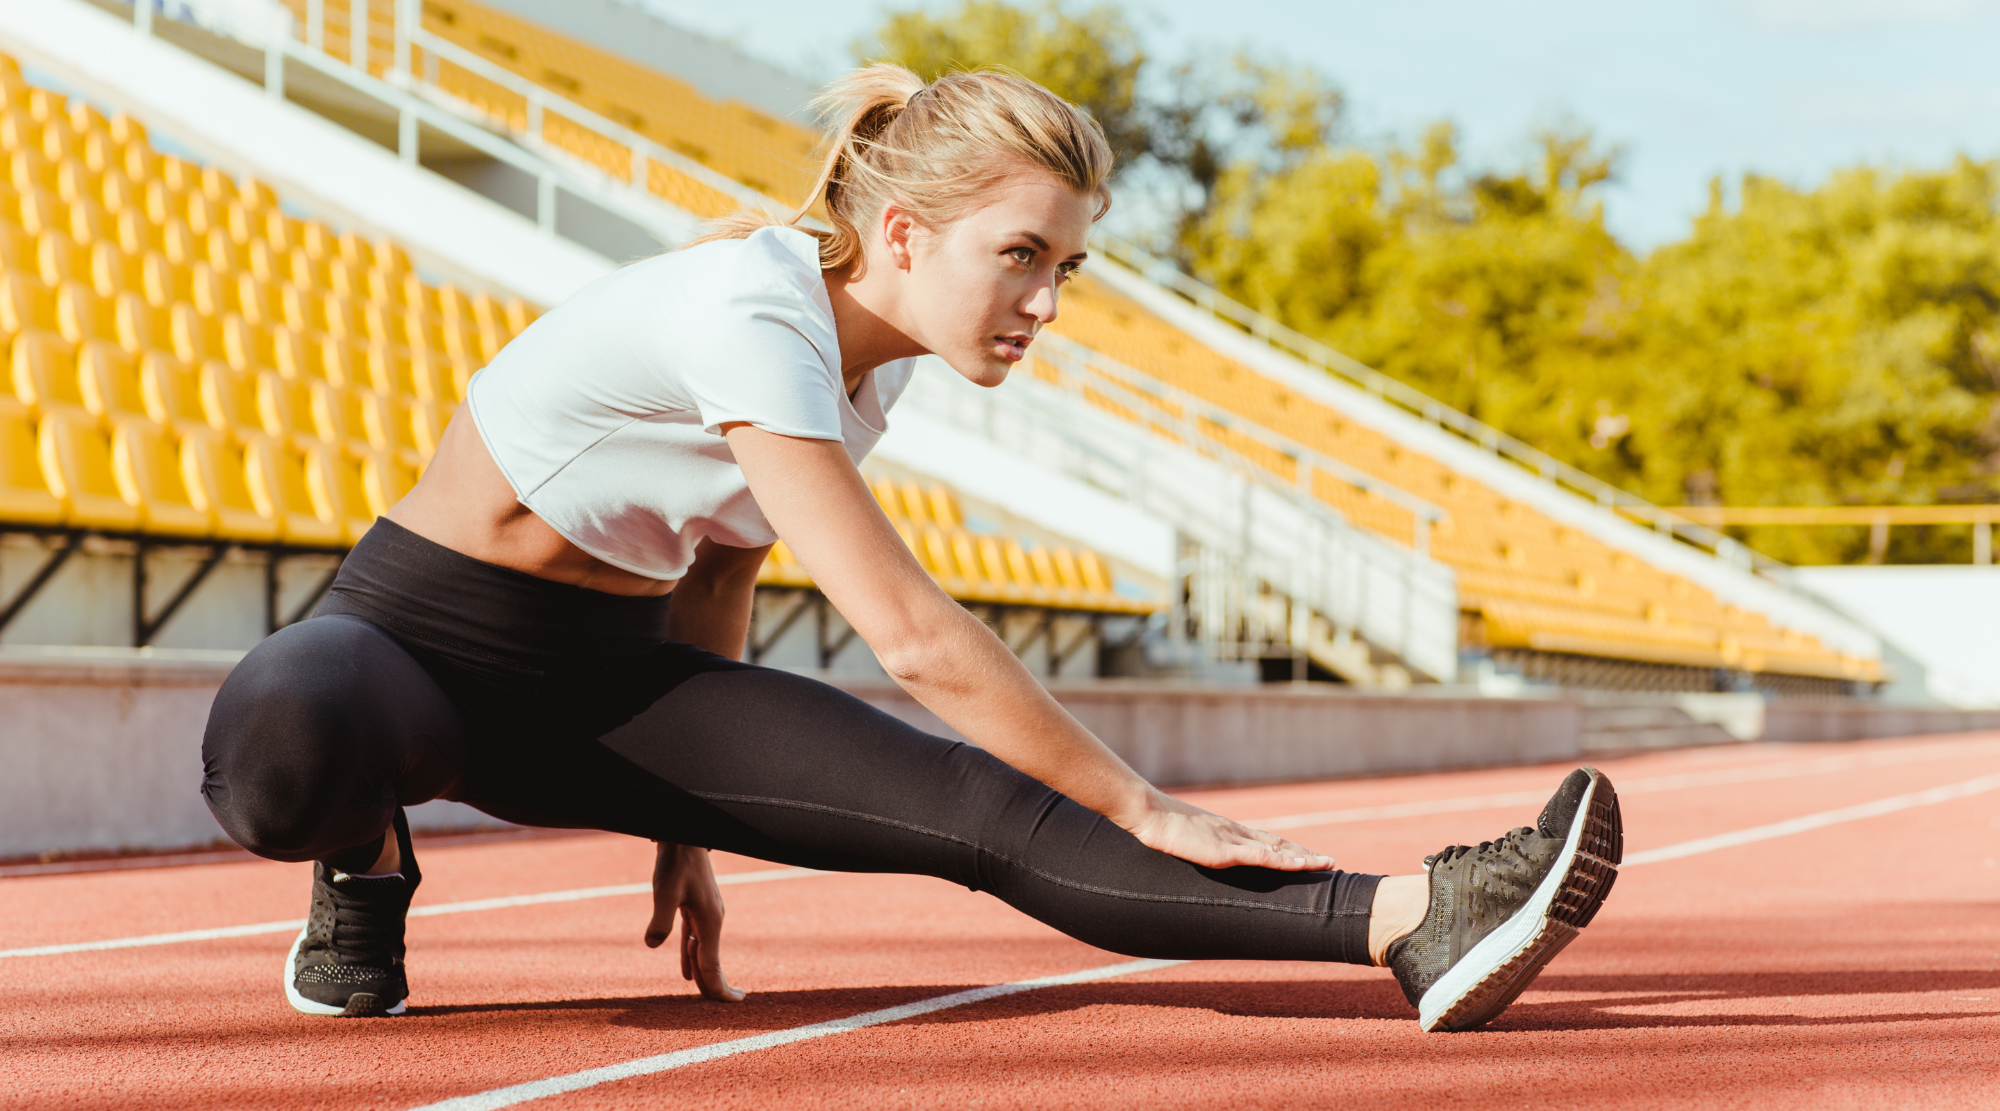 Kickboxing Fitness App On How To Get Fit As A Beginner